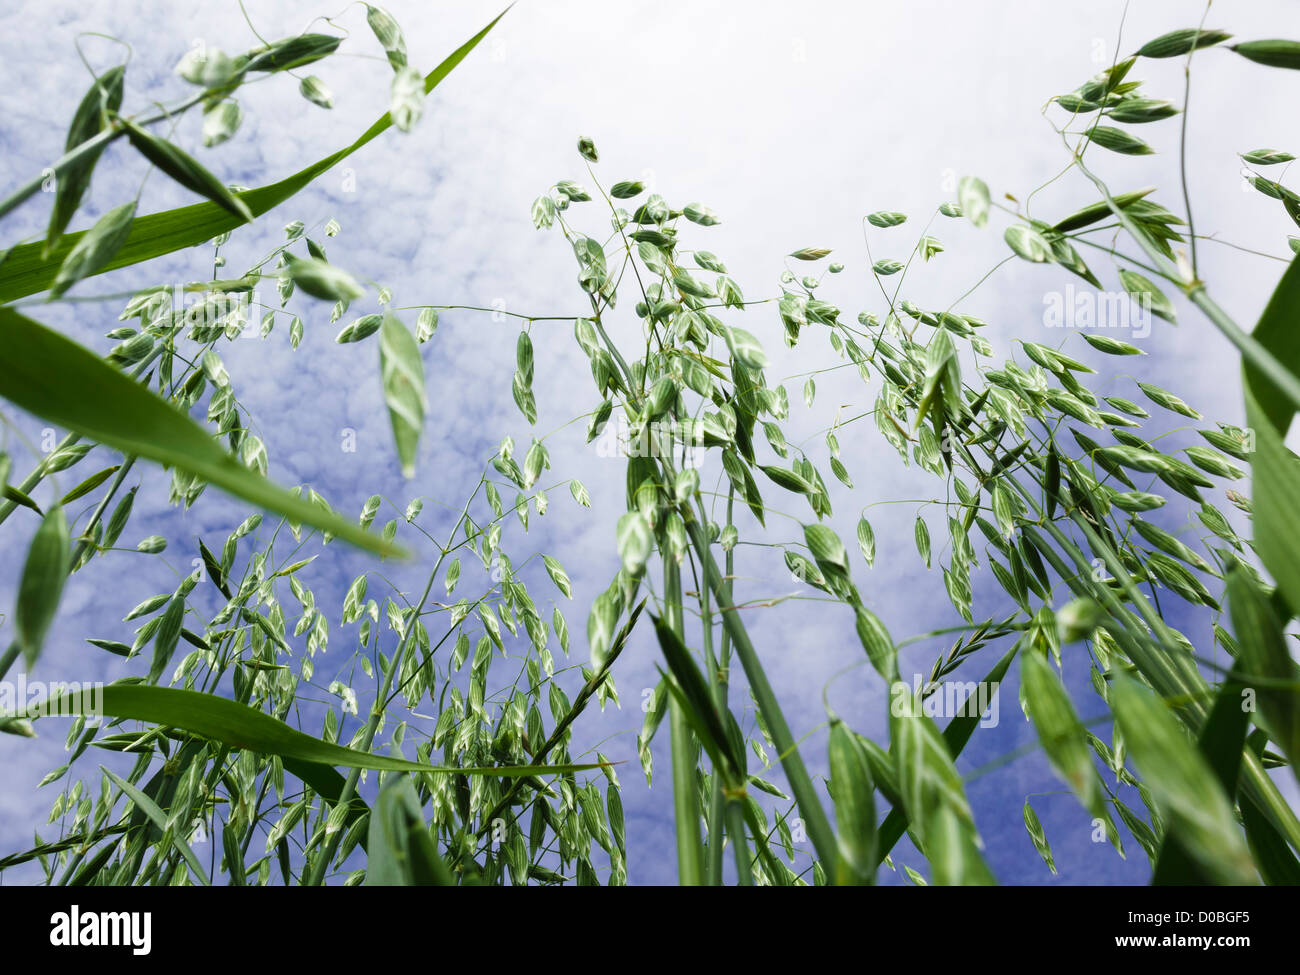 Cereal crop. Low angle photo of oats growing in a field. - Stock Image